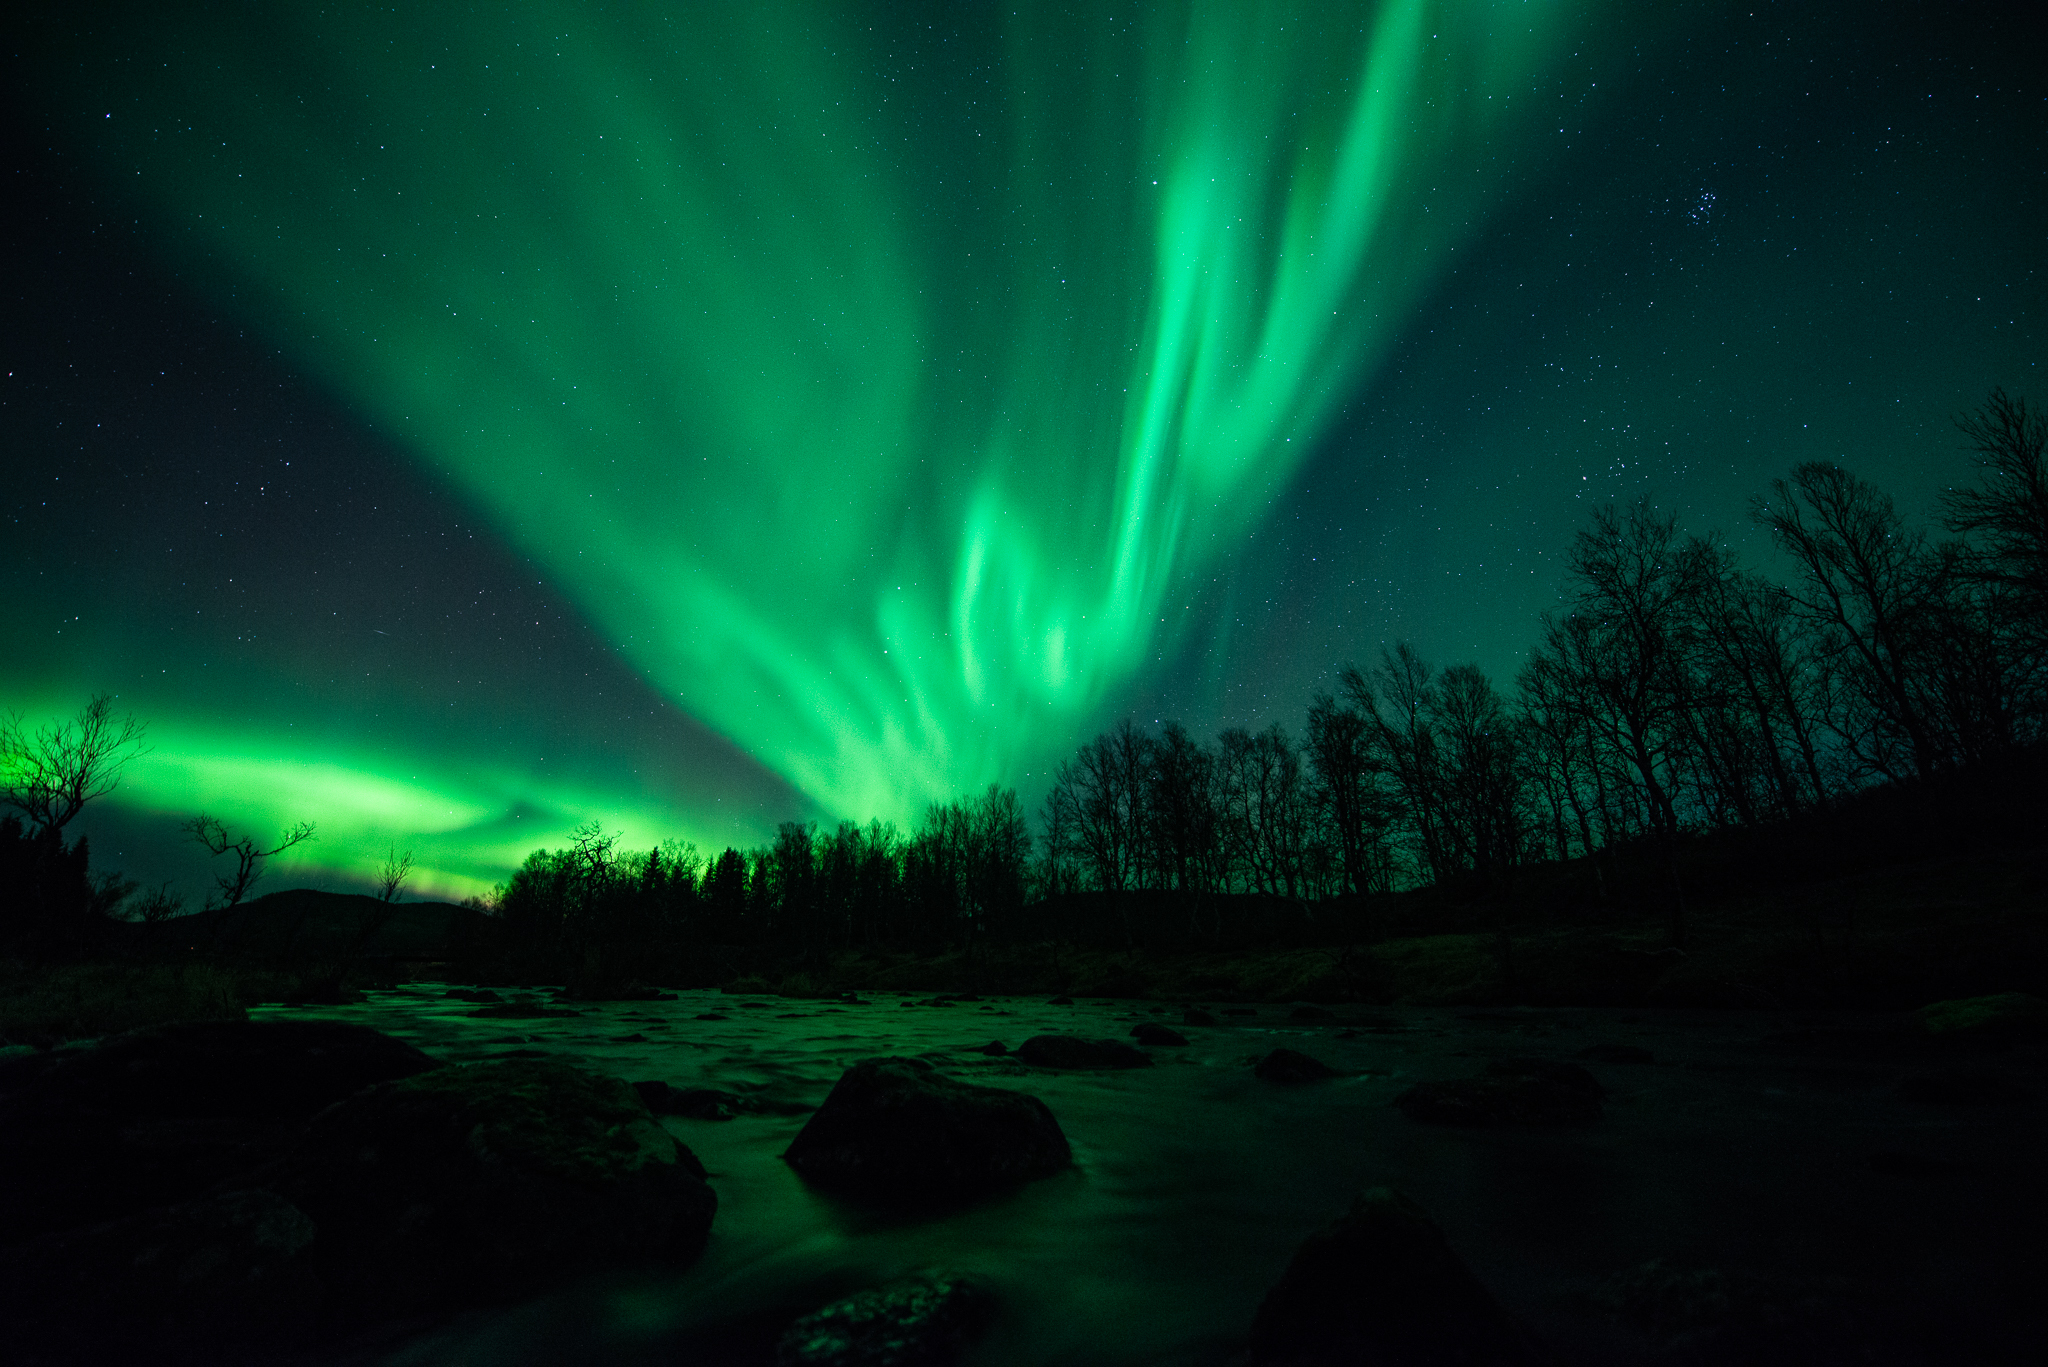 Travel: Calm and peace on spellbinding trip to the Northern Lights